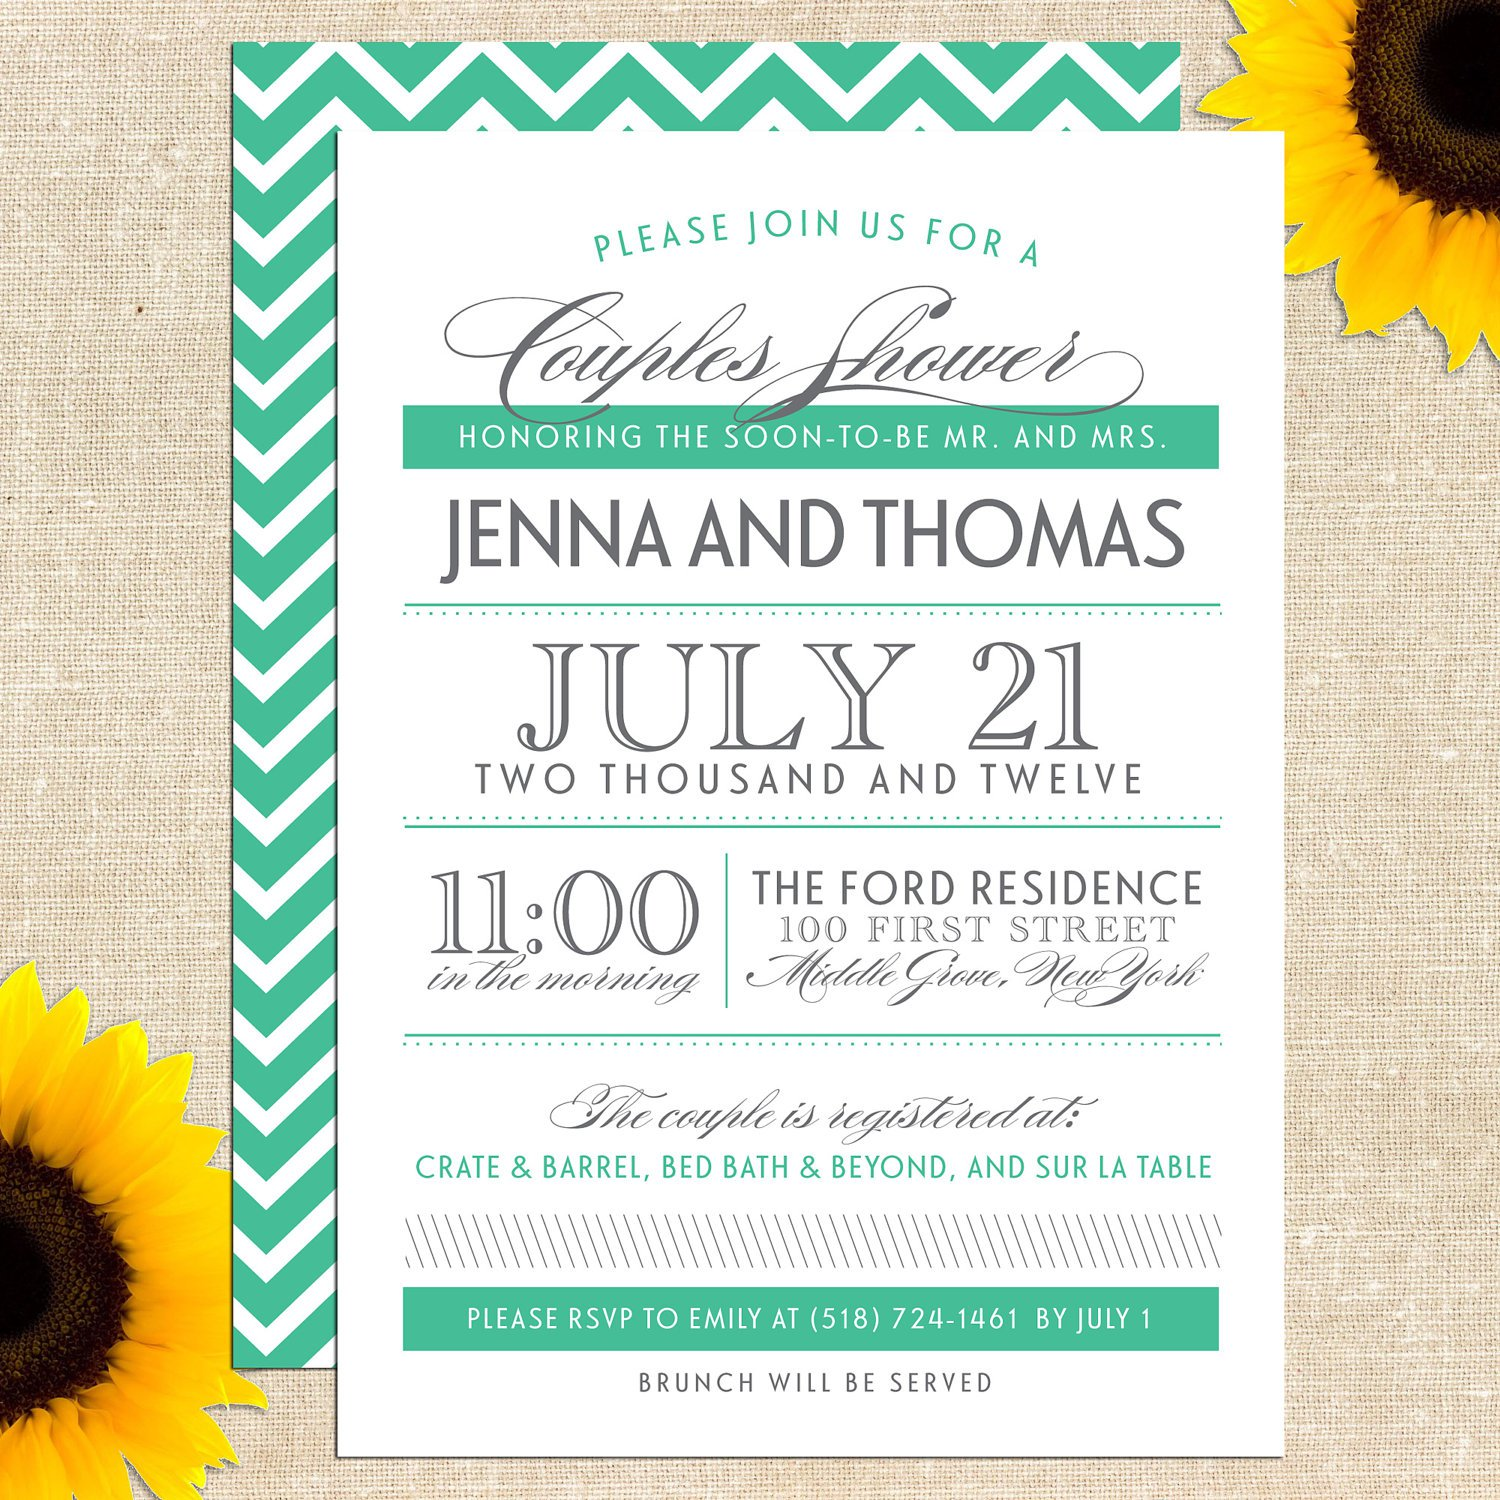 Sayings For Couples Shower Invitations